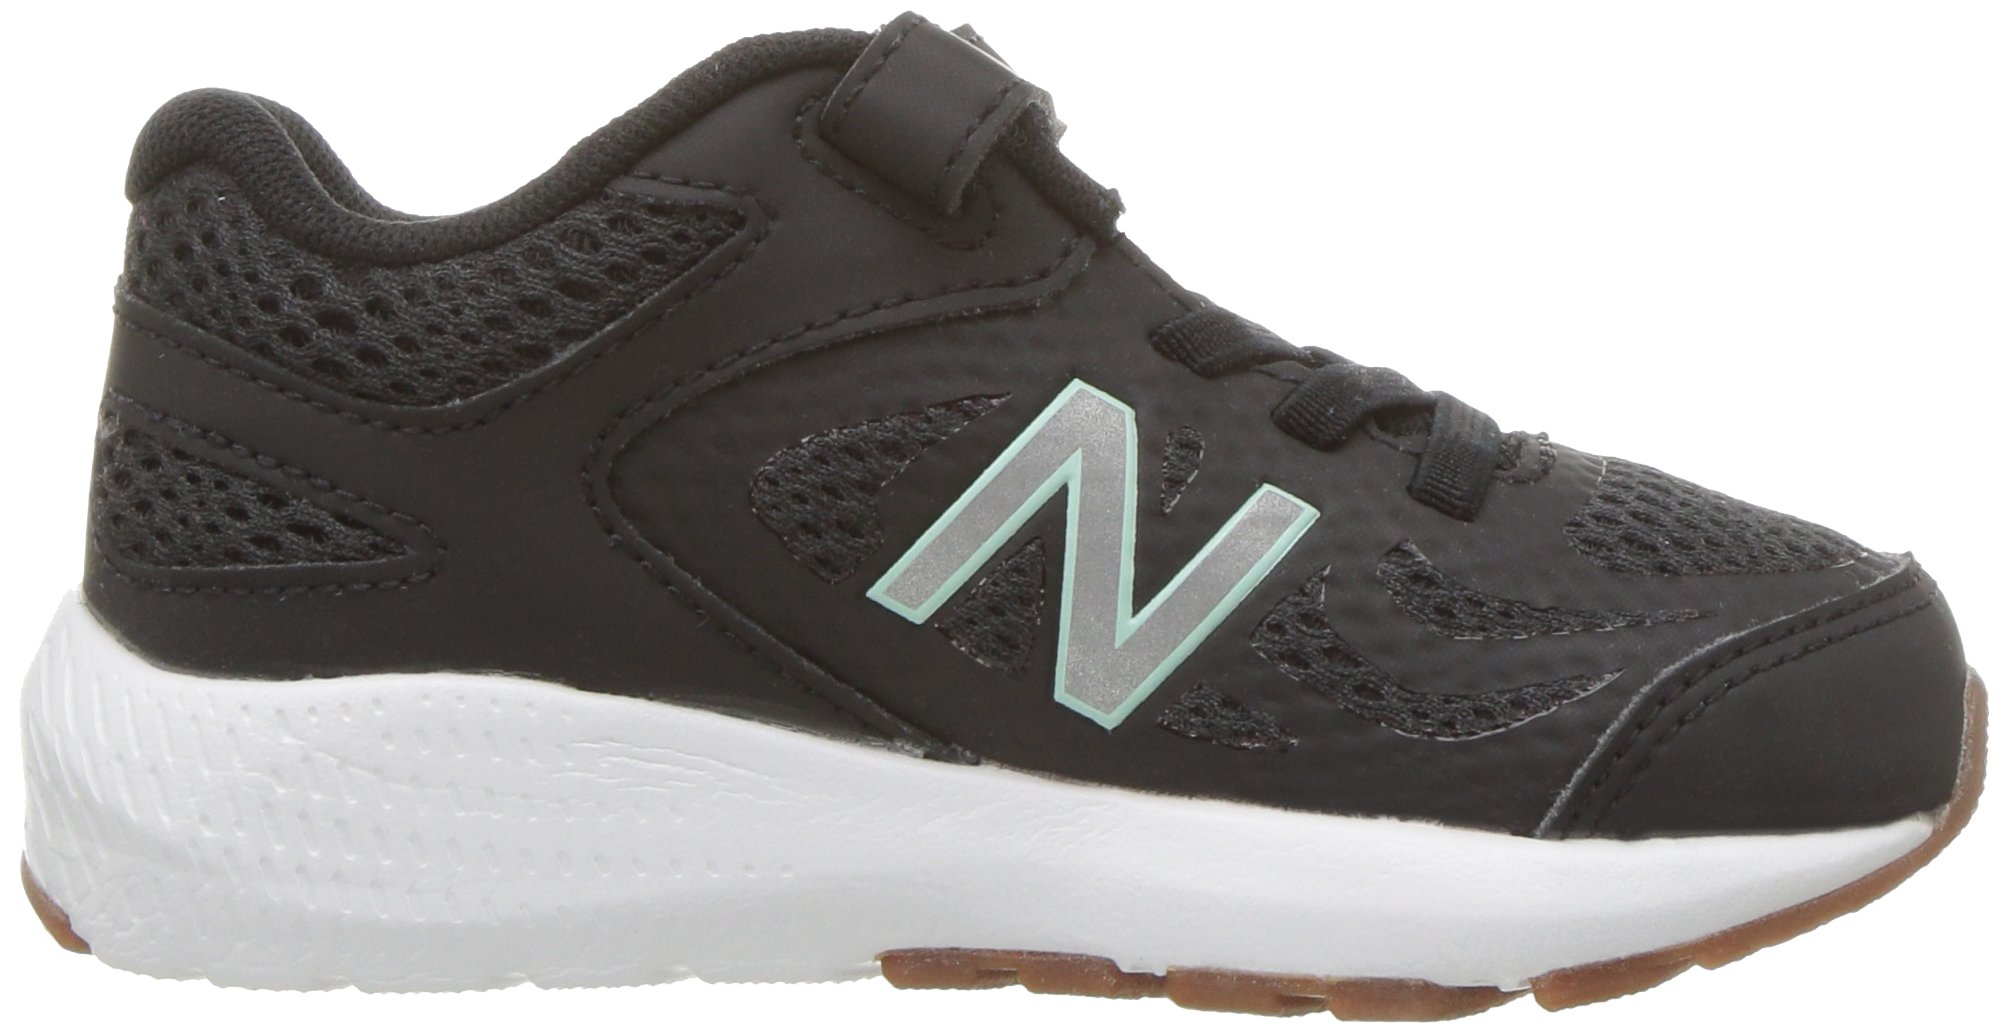 New Balance Girls' 519v1 Hook and Loop Running Shoe Black/Seafoam 2 M US Infant by New Balance (Image #7)